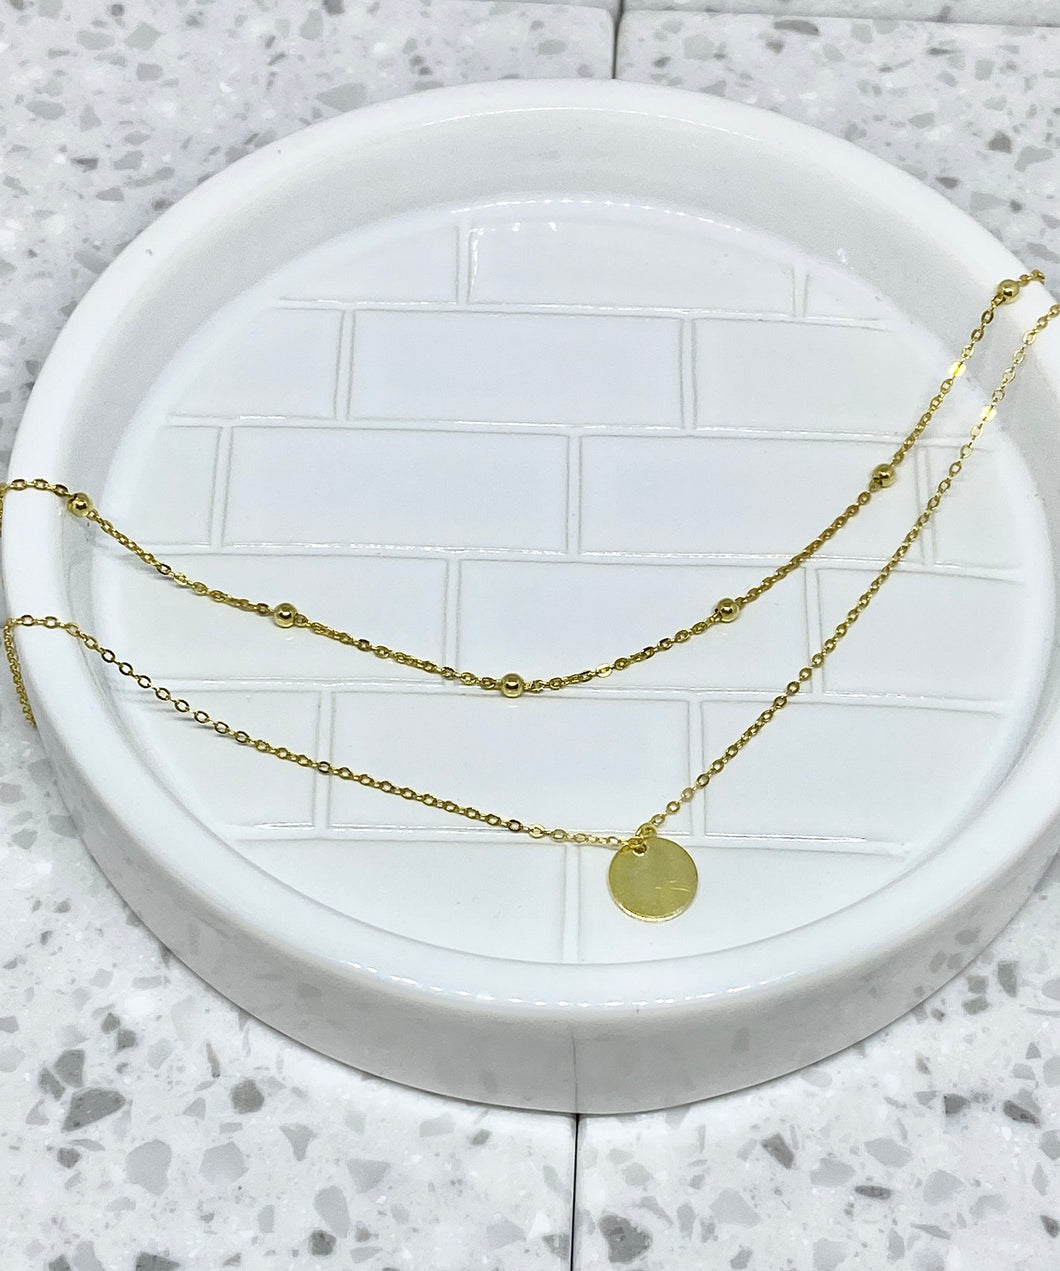 COIN LAYERED CHOKER NECKLACE - GOLD PLATED